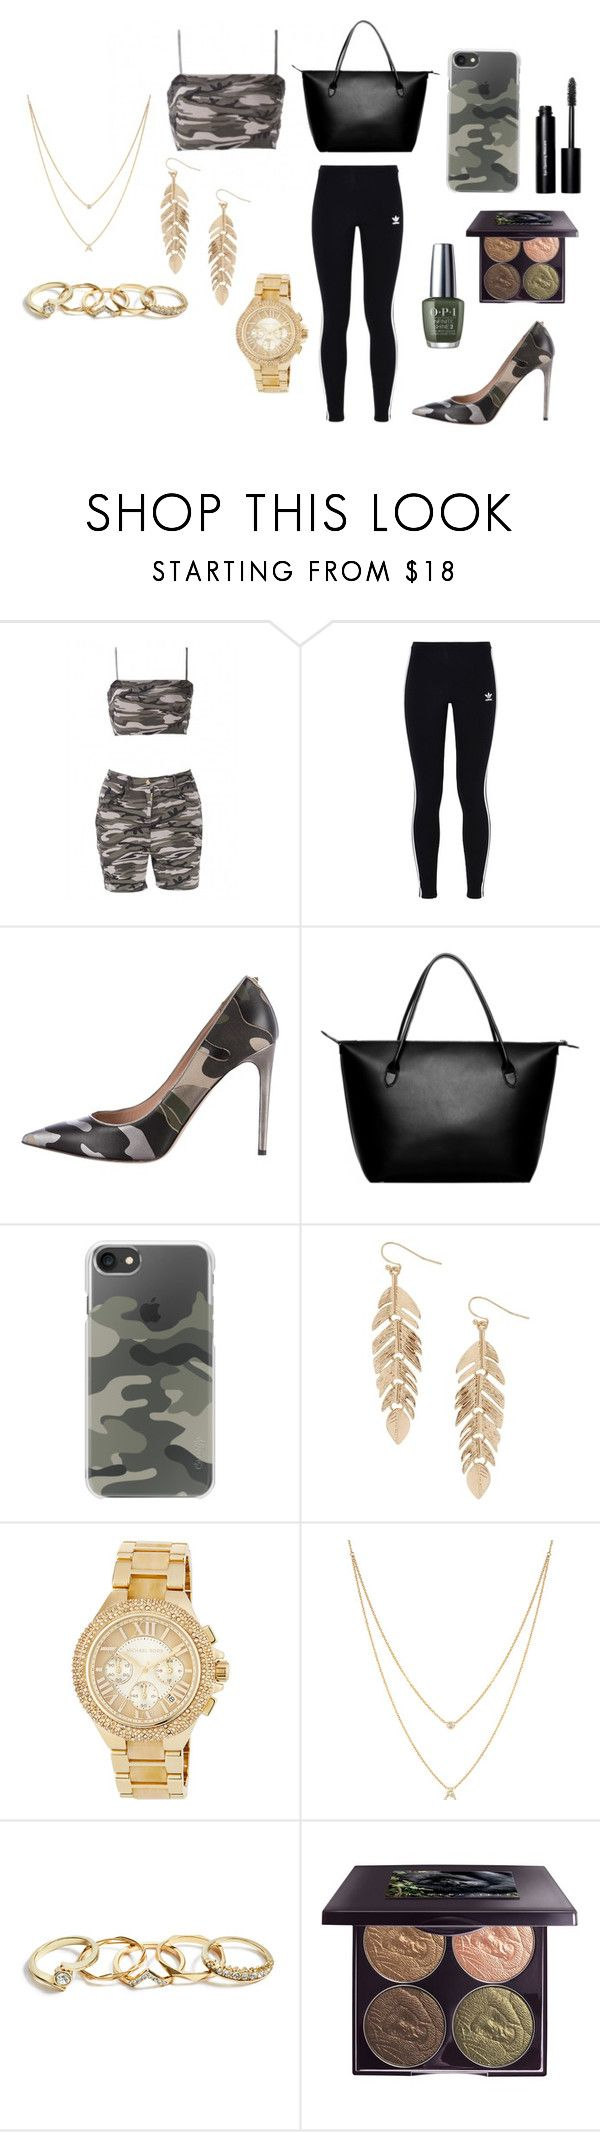 """how camo can you go?"" by santinadias ❤ liked on Polyvore featuring WithChic, adidas Originals, Valentino, The Row, Casetify, Humble Chic, MICHAEL Michael Kors, EF Collection, GUESS and Chantecaille"